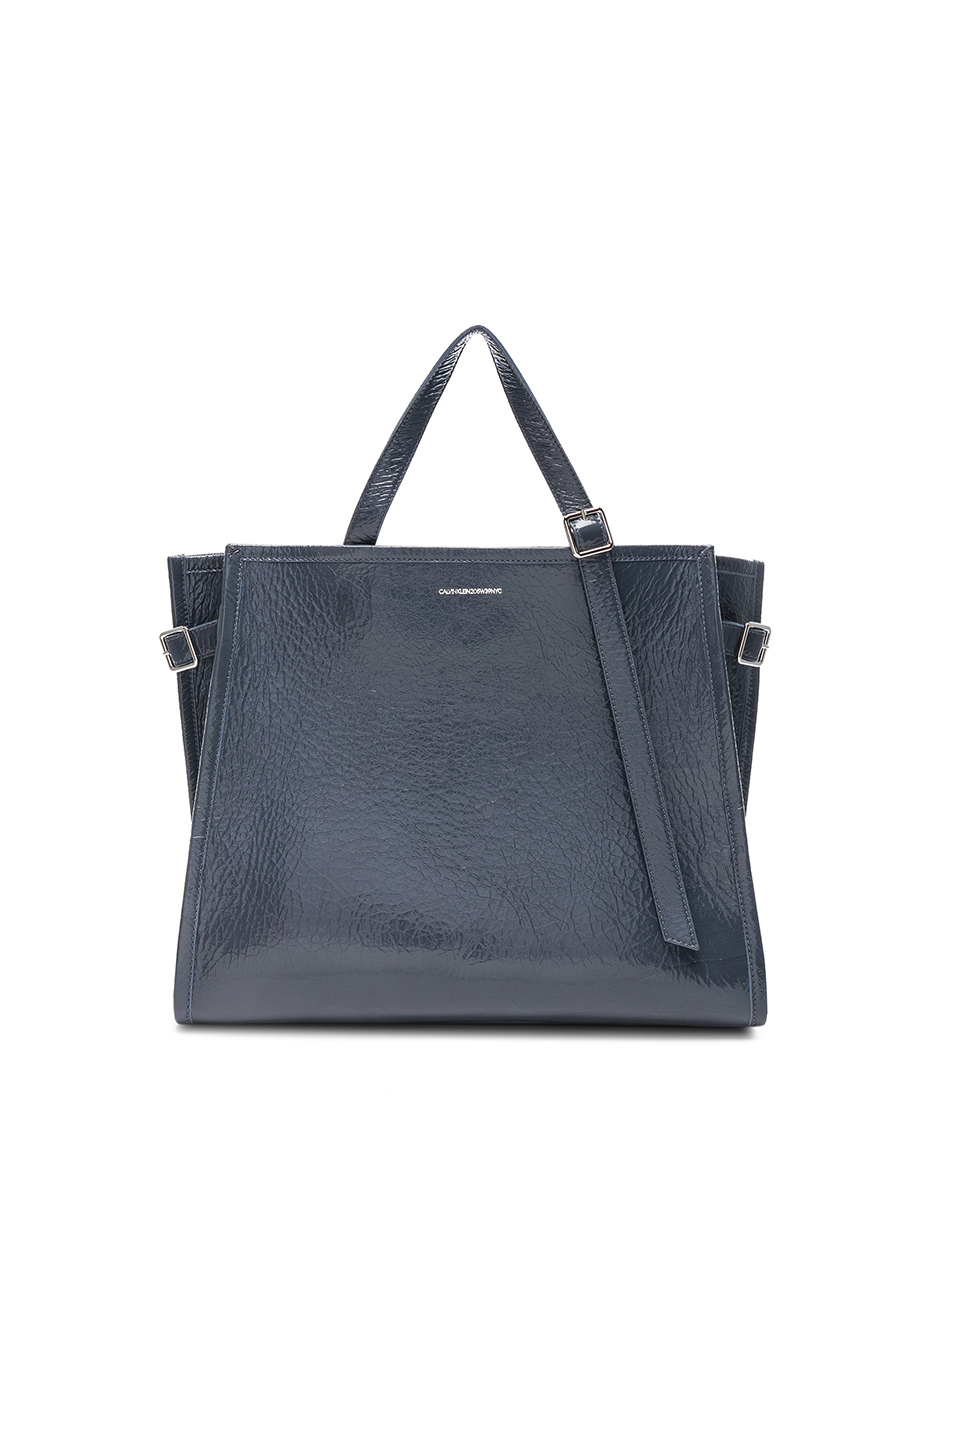 1a33c62d56024 Buy Original CALVIN KLEIN 205W39NYC East West Side Strap Tote at ...